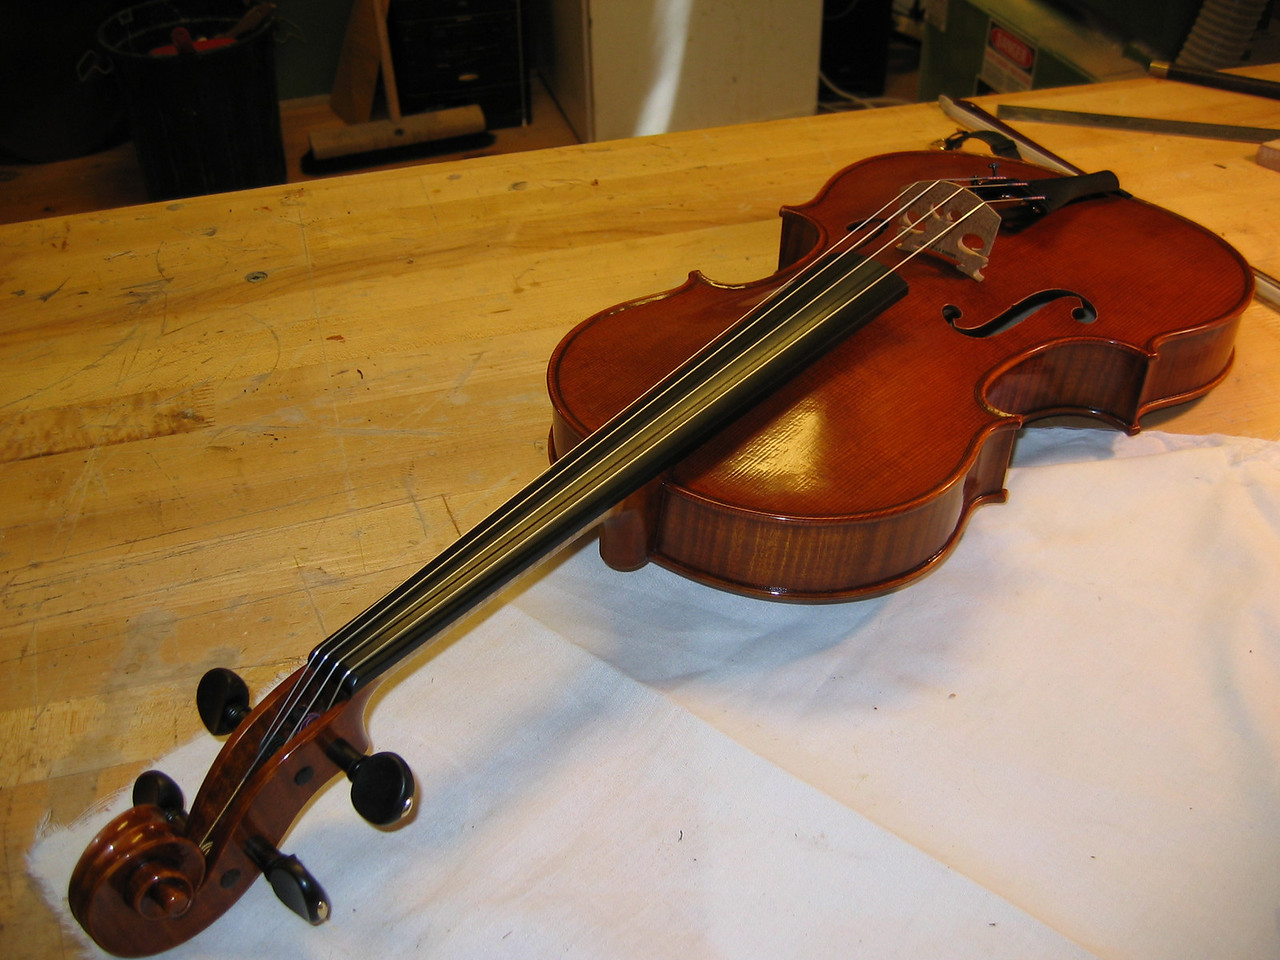 October 7 - from the peg end, the viola looks long but in fact the body is only 15 5/8 inches. I played it for awhile and it sounded great, even into high positions on the C string.